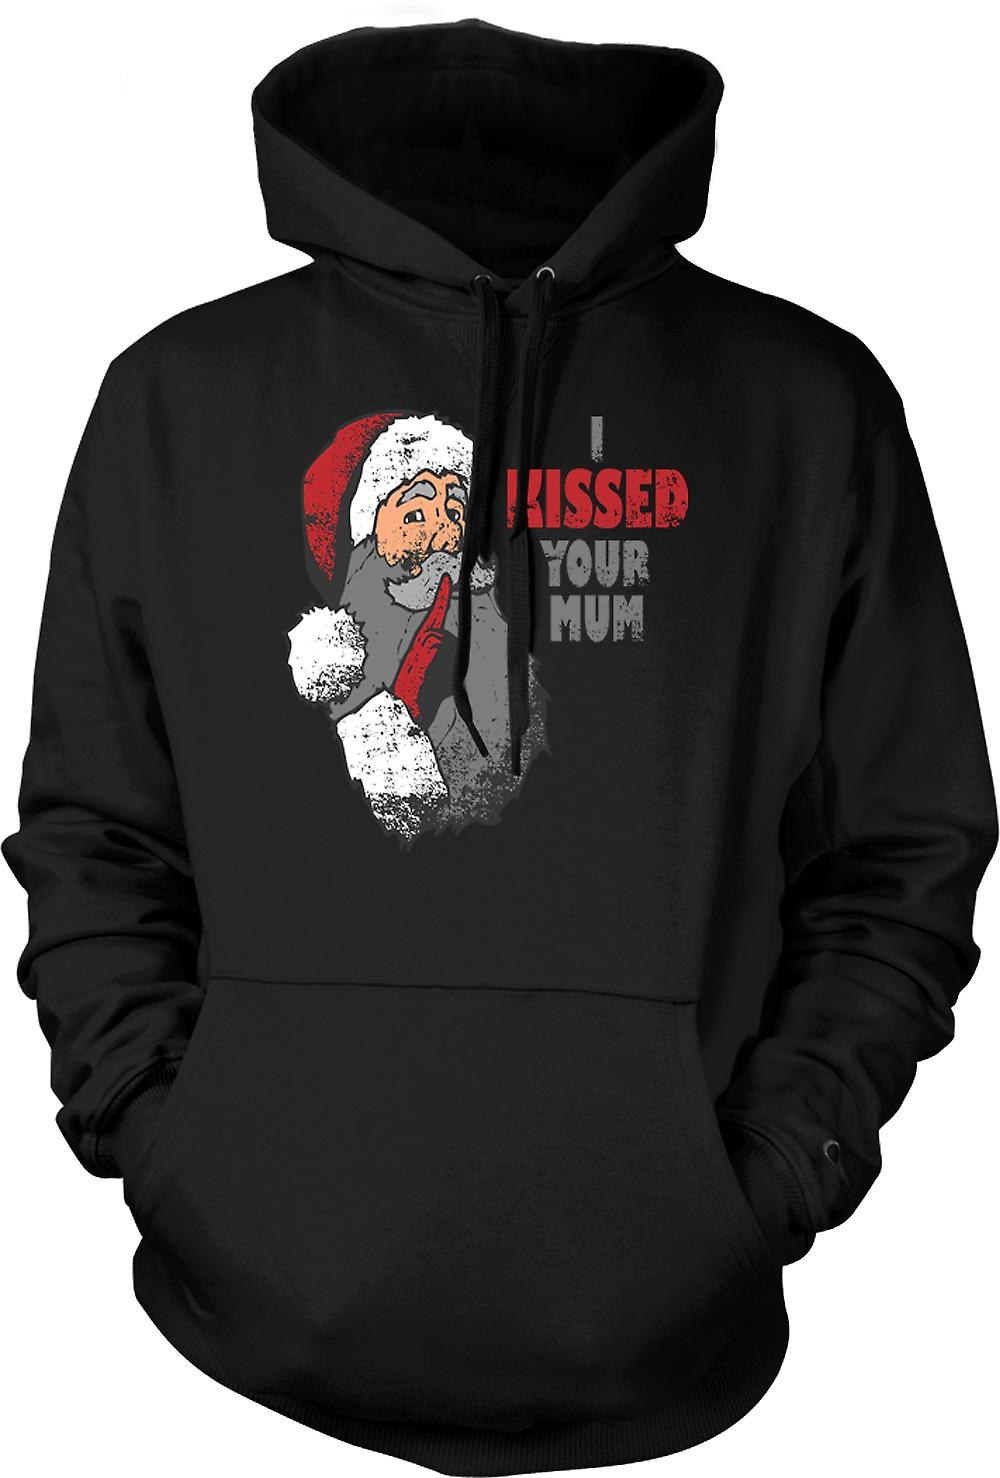 Mens Hoodie - I Kissed Your Mum - Funny Santa